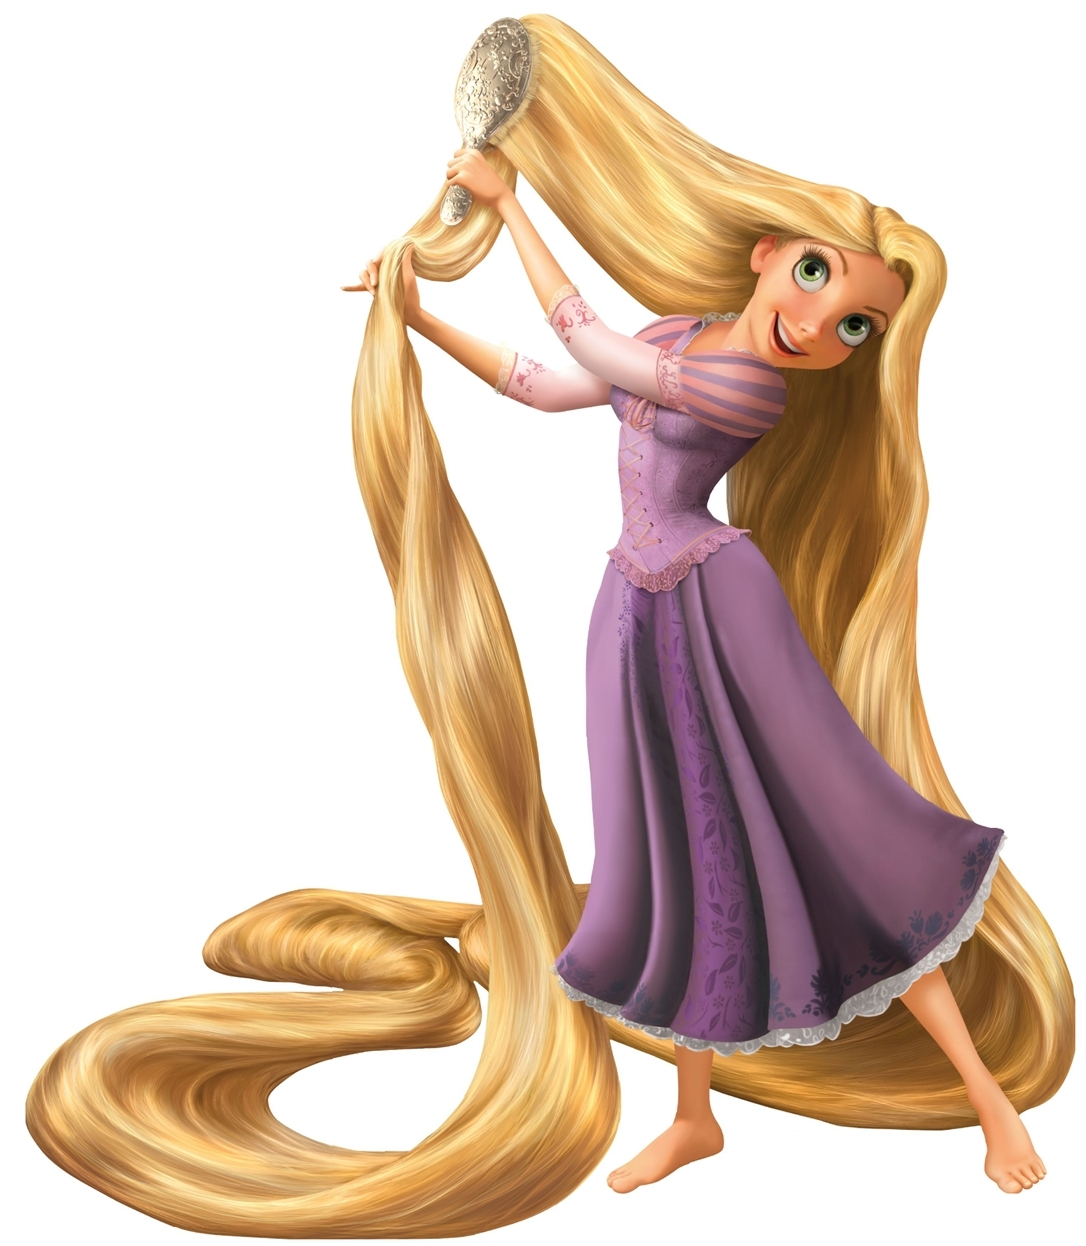 Rapunzel disney princess photo 20380637 fanpop - Image raiponse ...